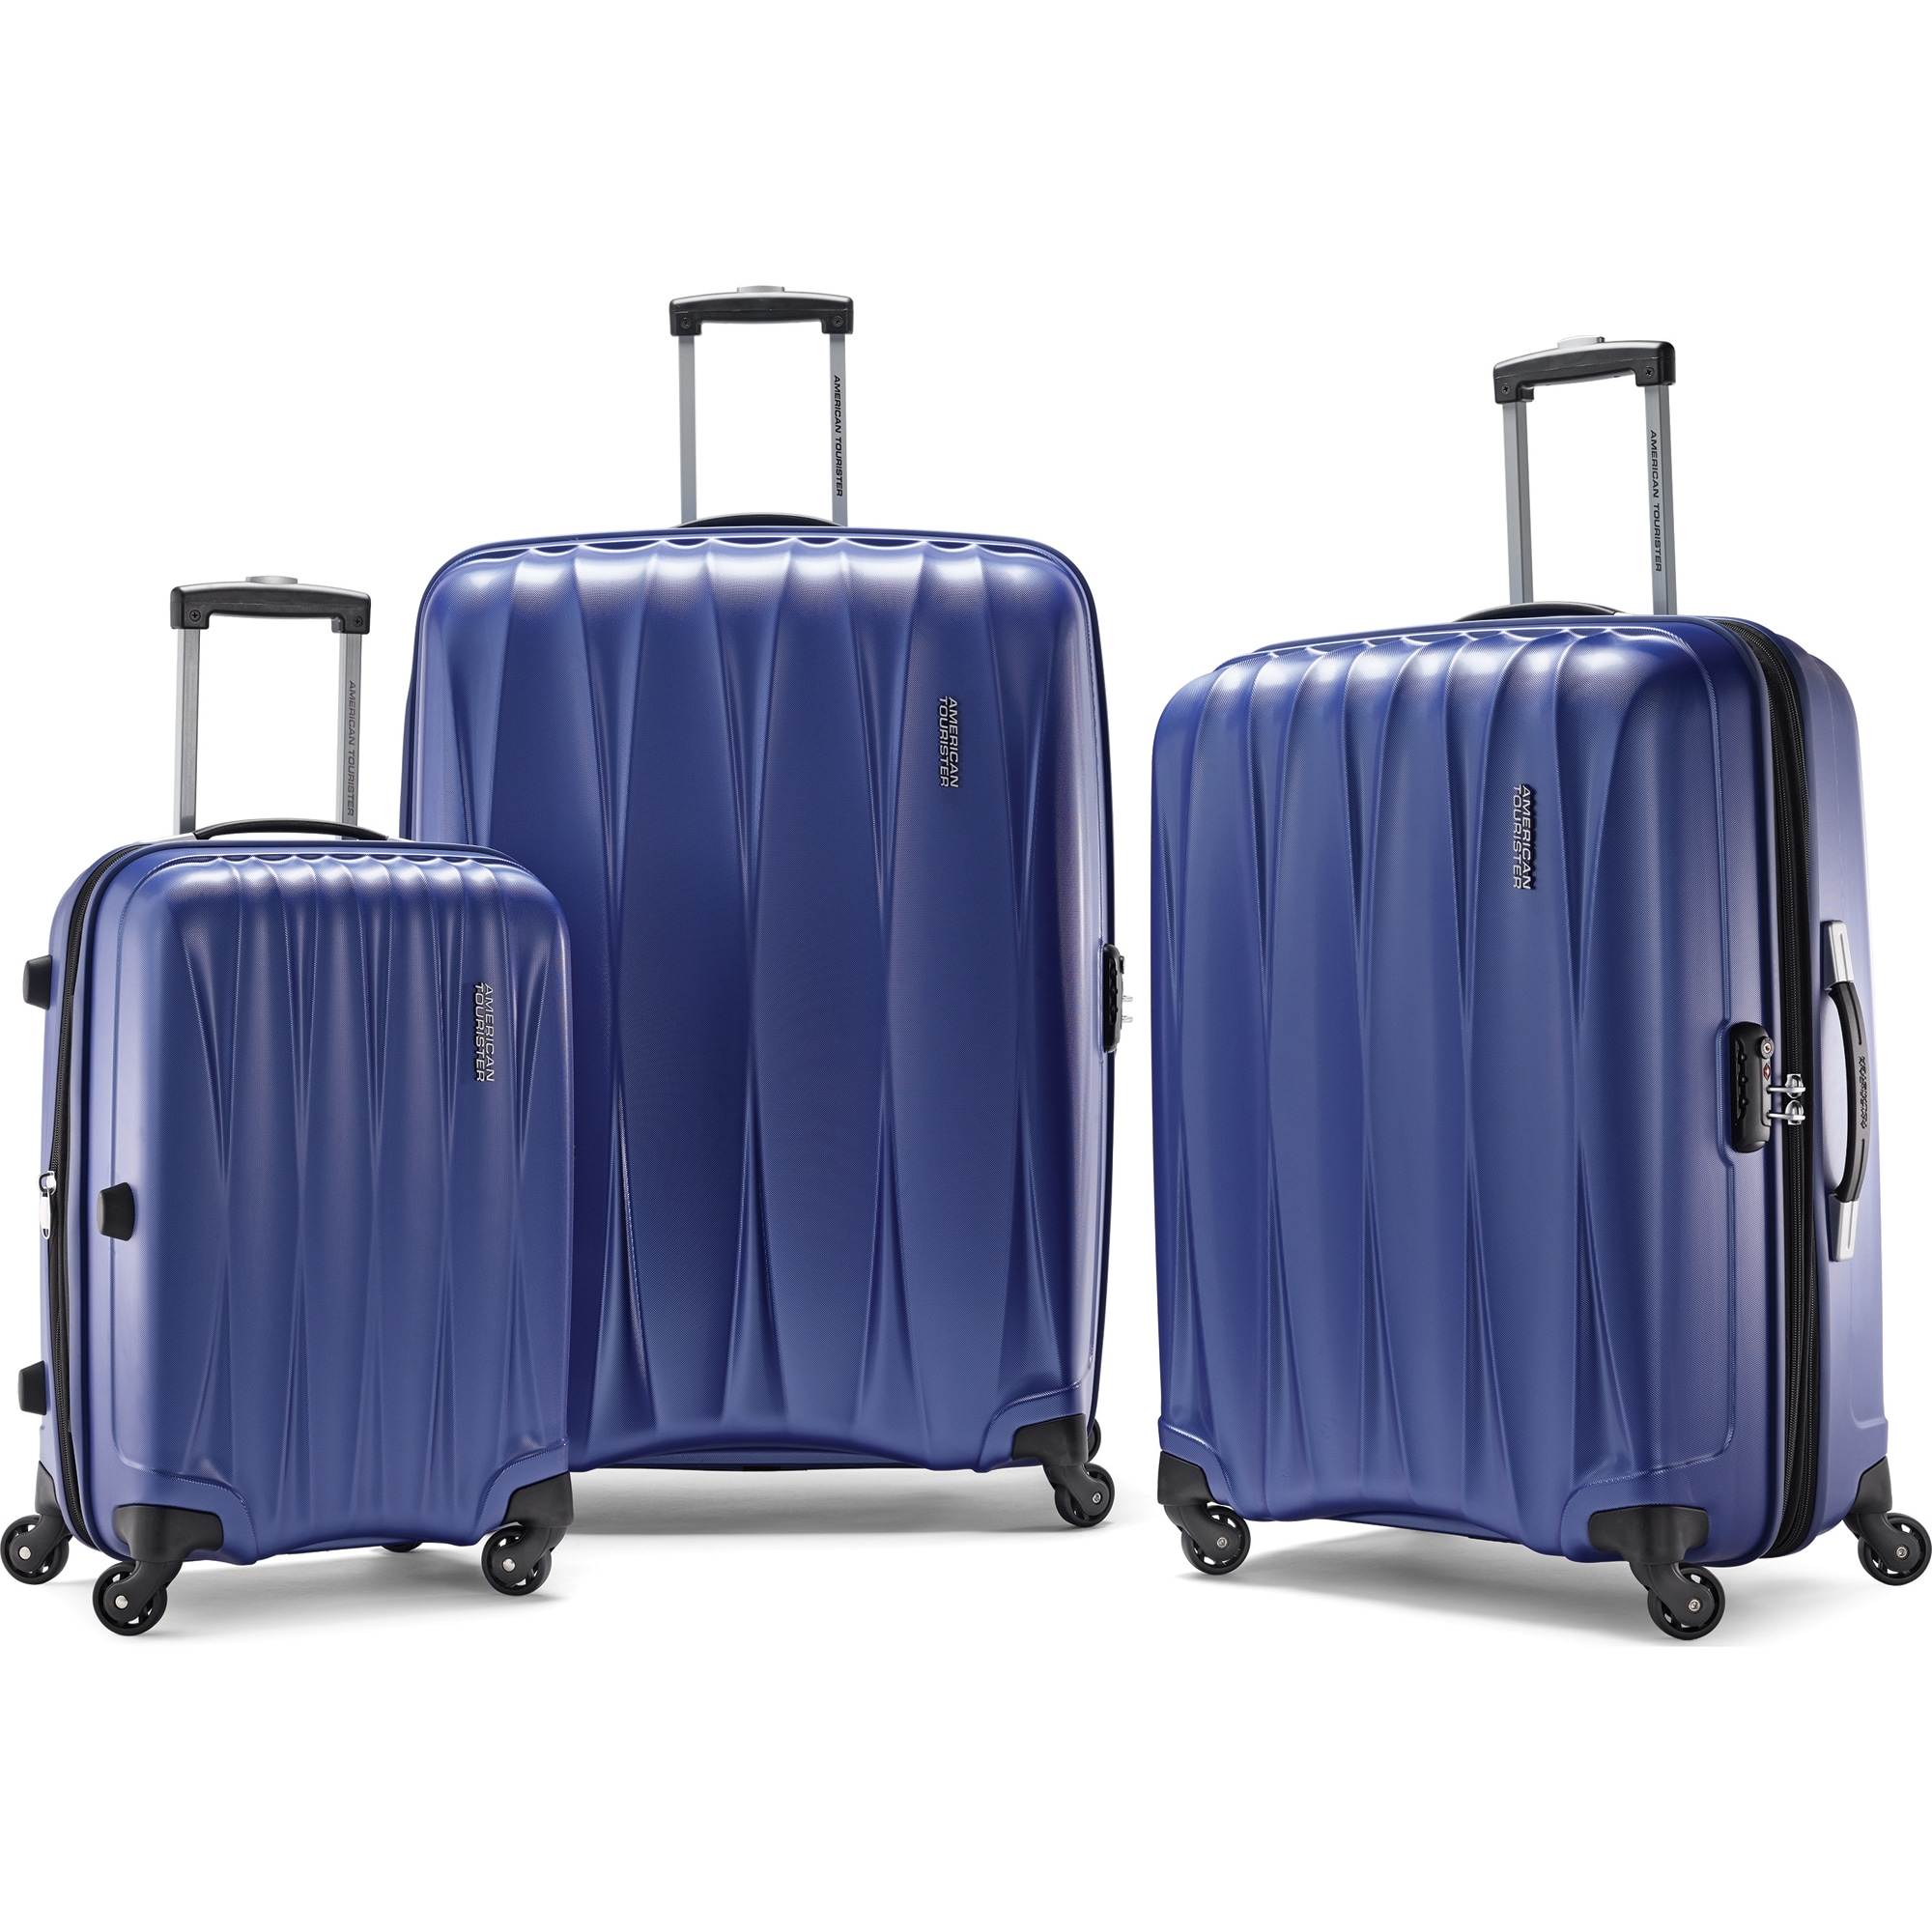 3-Piece American Tourister Arona Hardside Spinner Luggage Set $149 (or less w/ SD Cashback) + free s/h @ Buydig